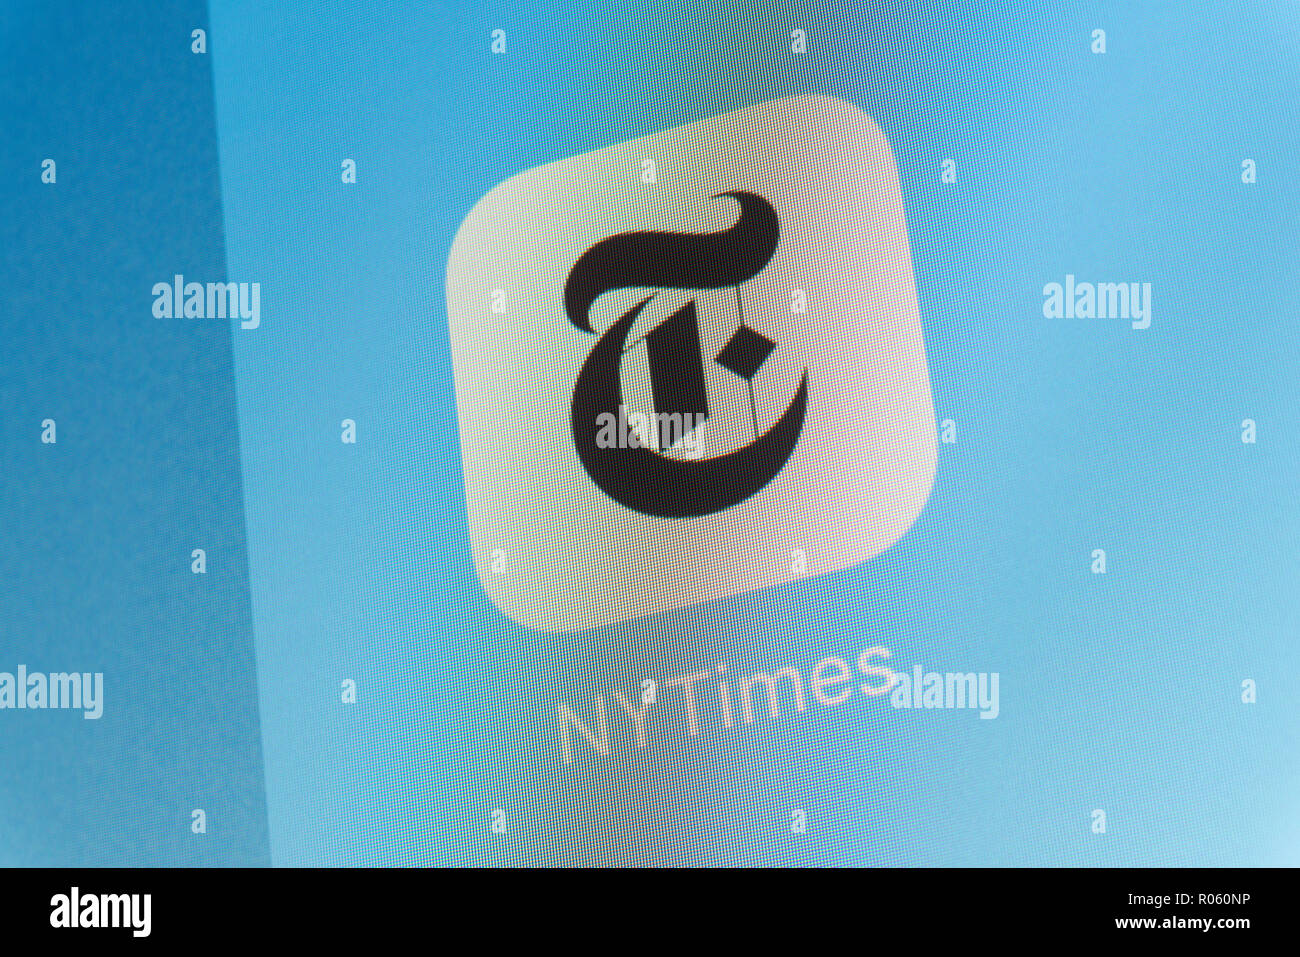 New Yprk Times App on cellphone screen - Stock Image